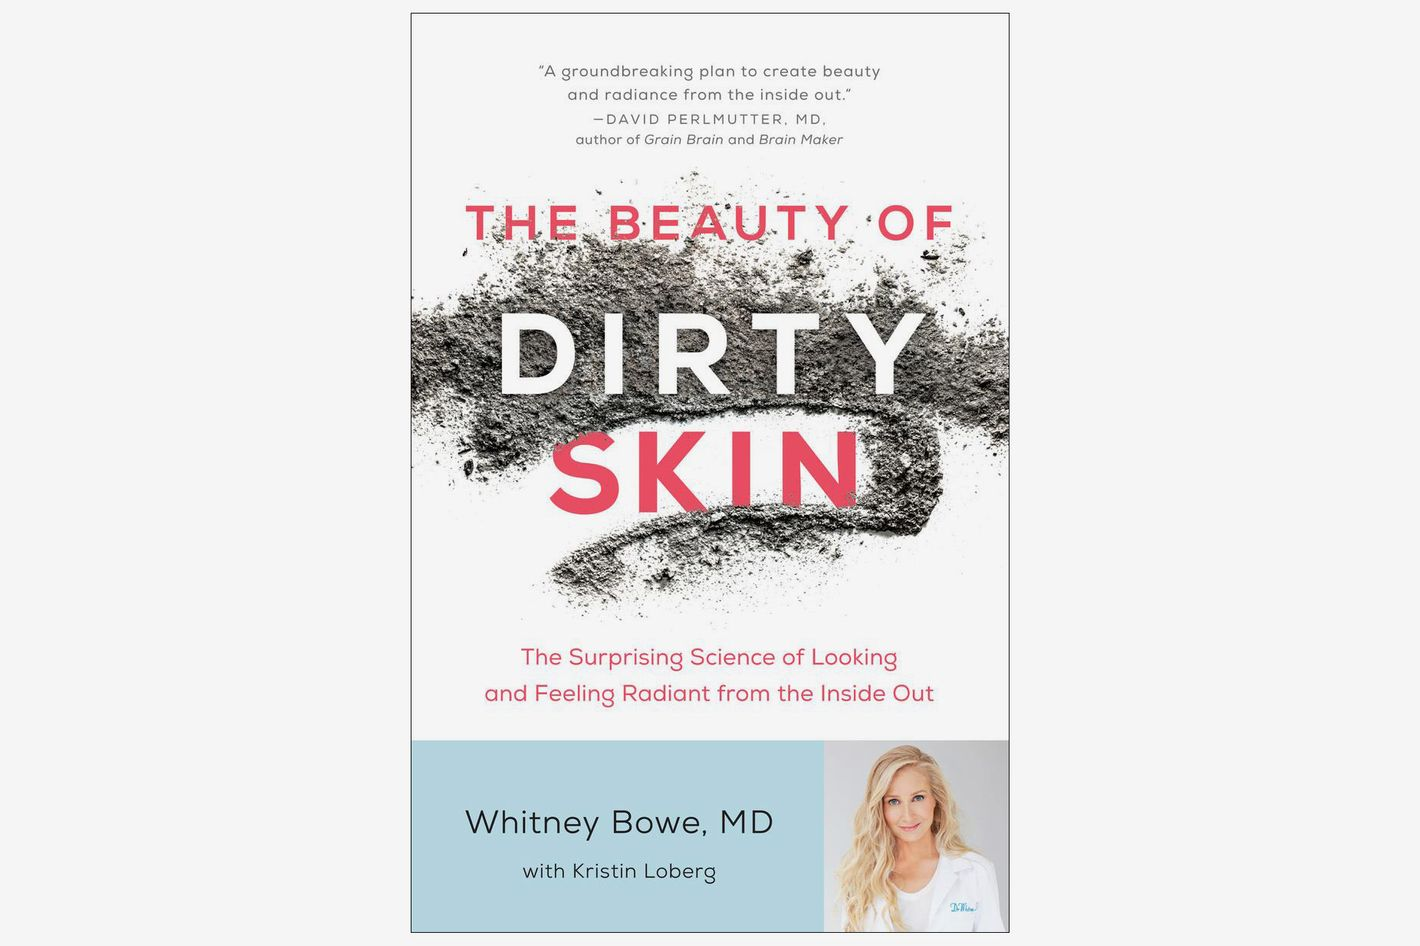 The Beauty of Dirty Skin: The Surprising Science of Looking and Feeling Radiant from the Inside Out, by Whitney Bowe